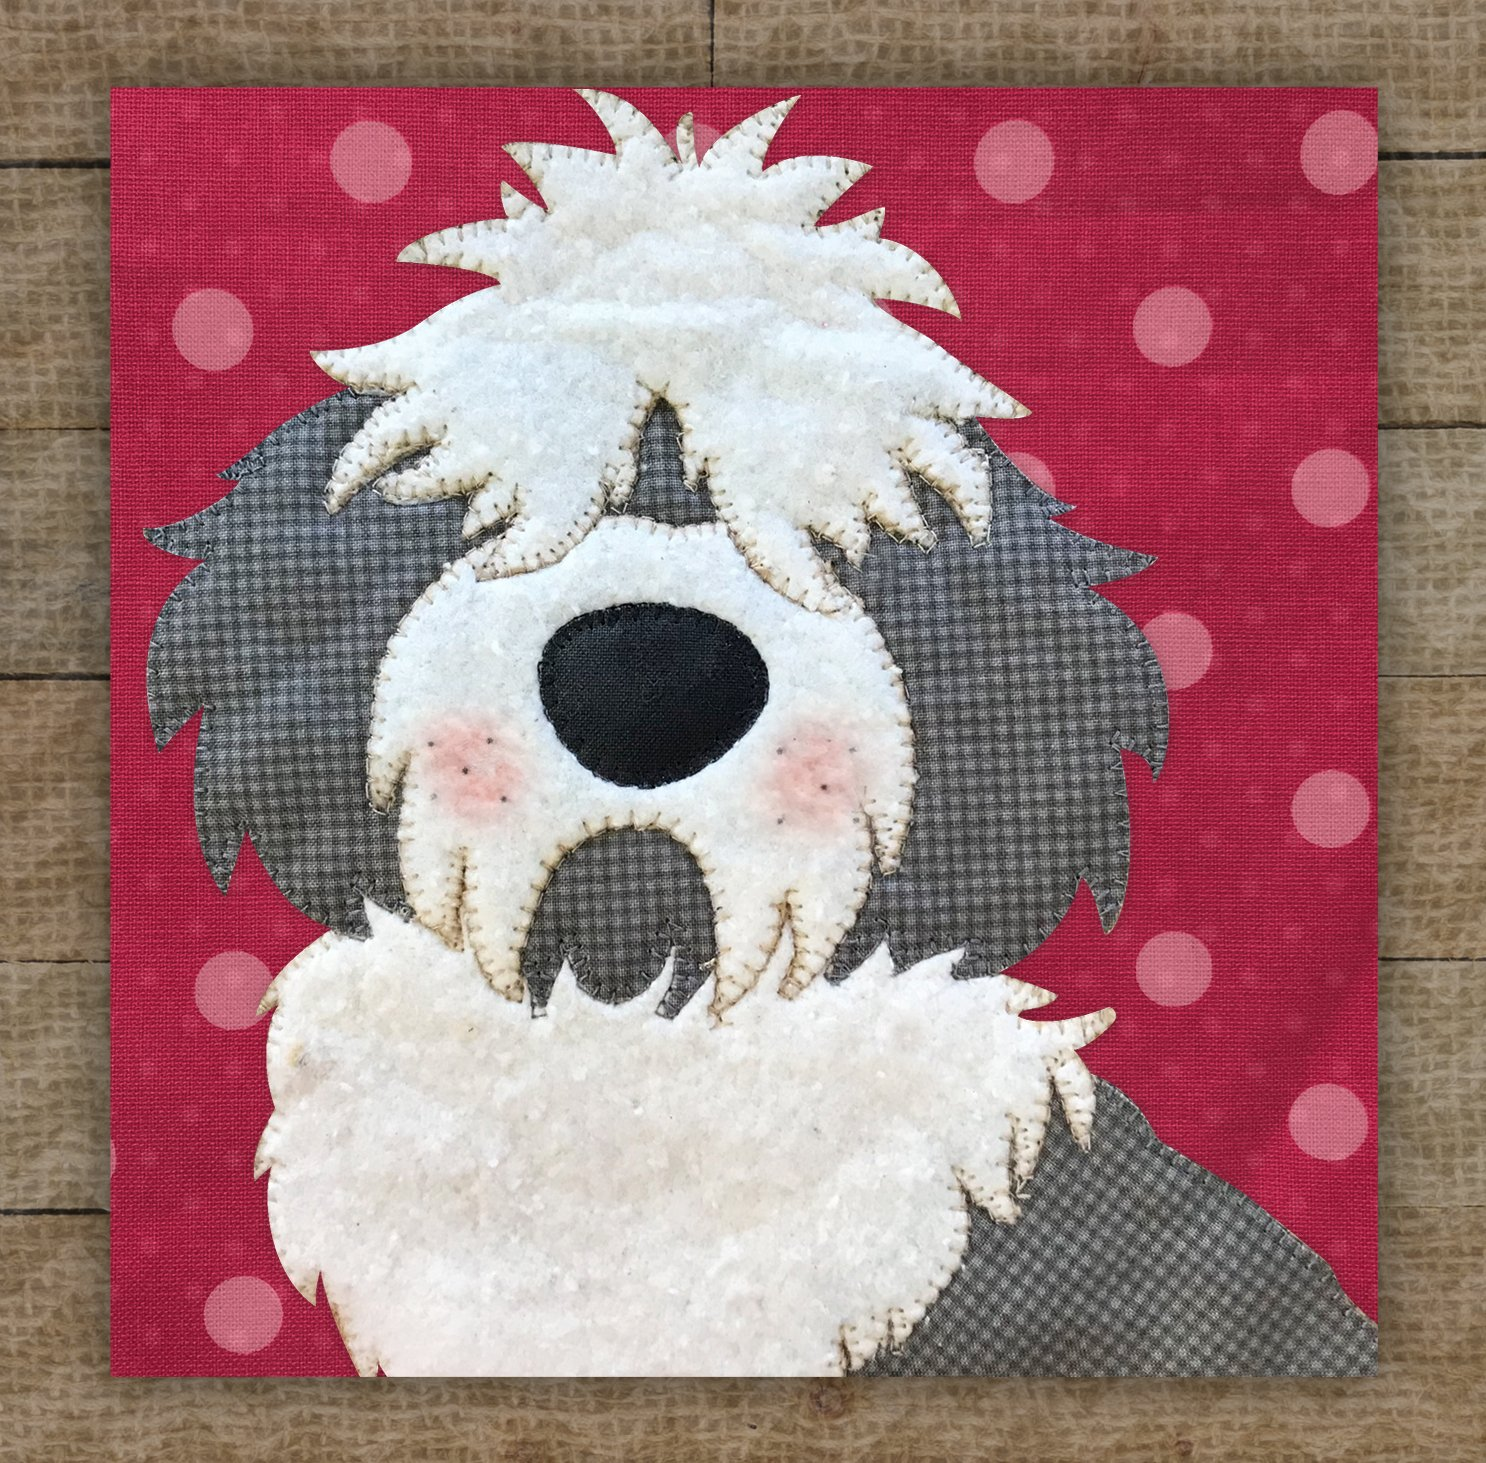 Sheepdog - Pattern